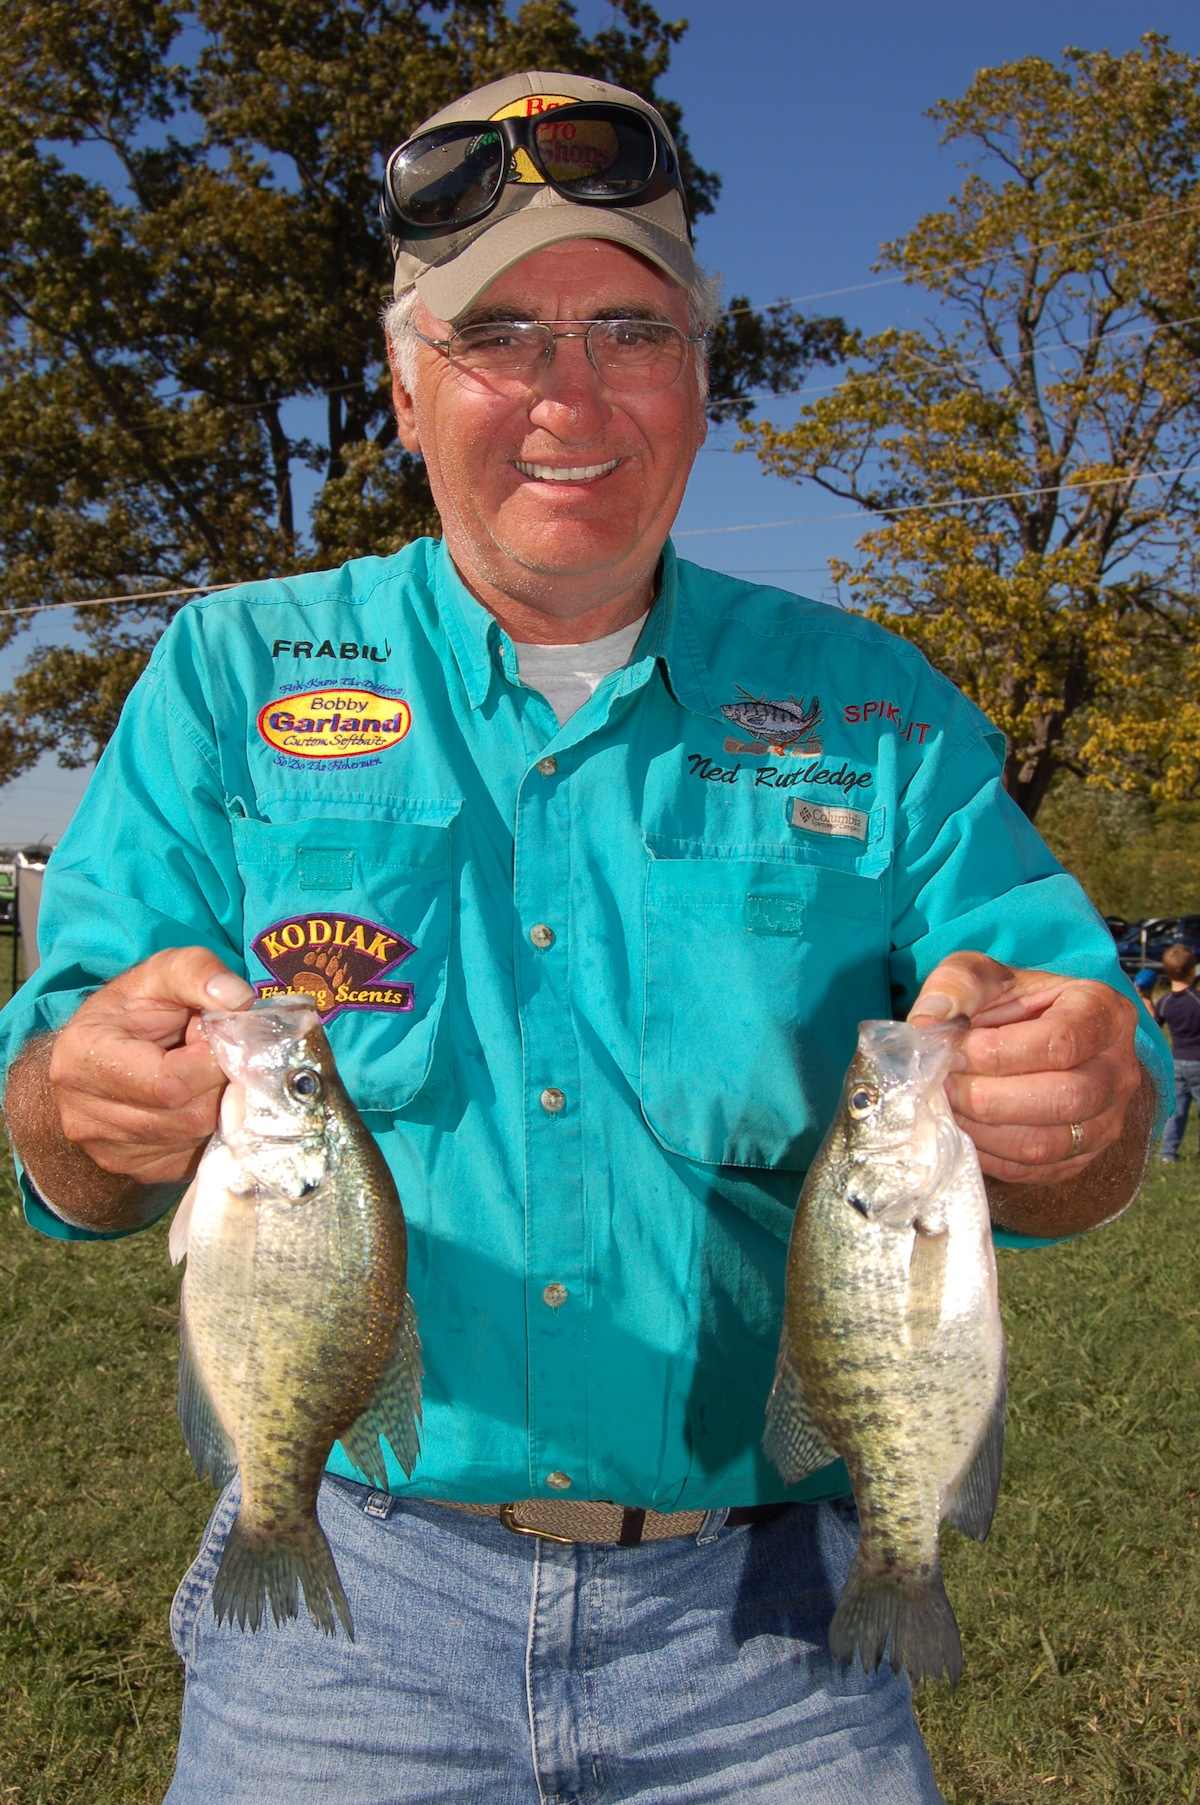 Ned rutledge and bobby garland memorial crappie tournament for Crappie fishing in missouri